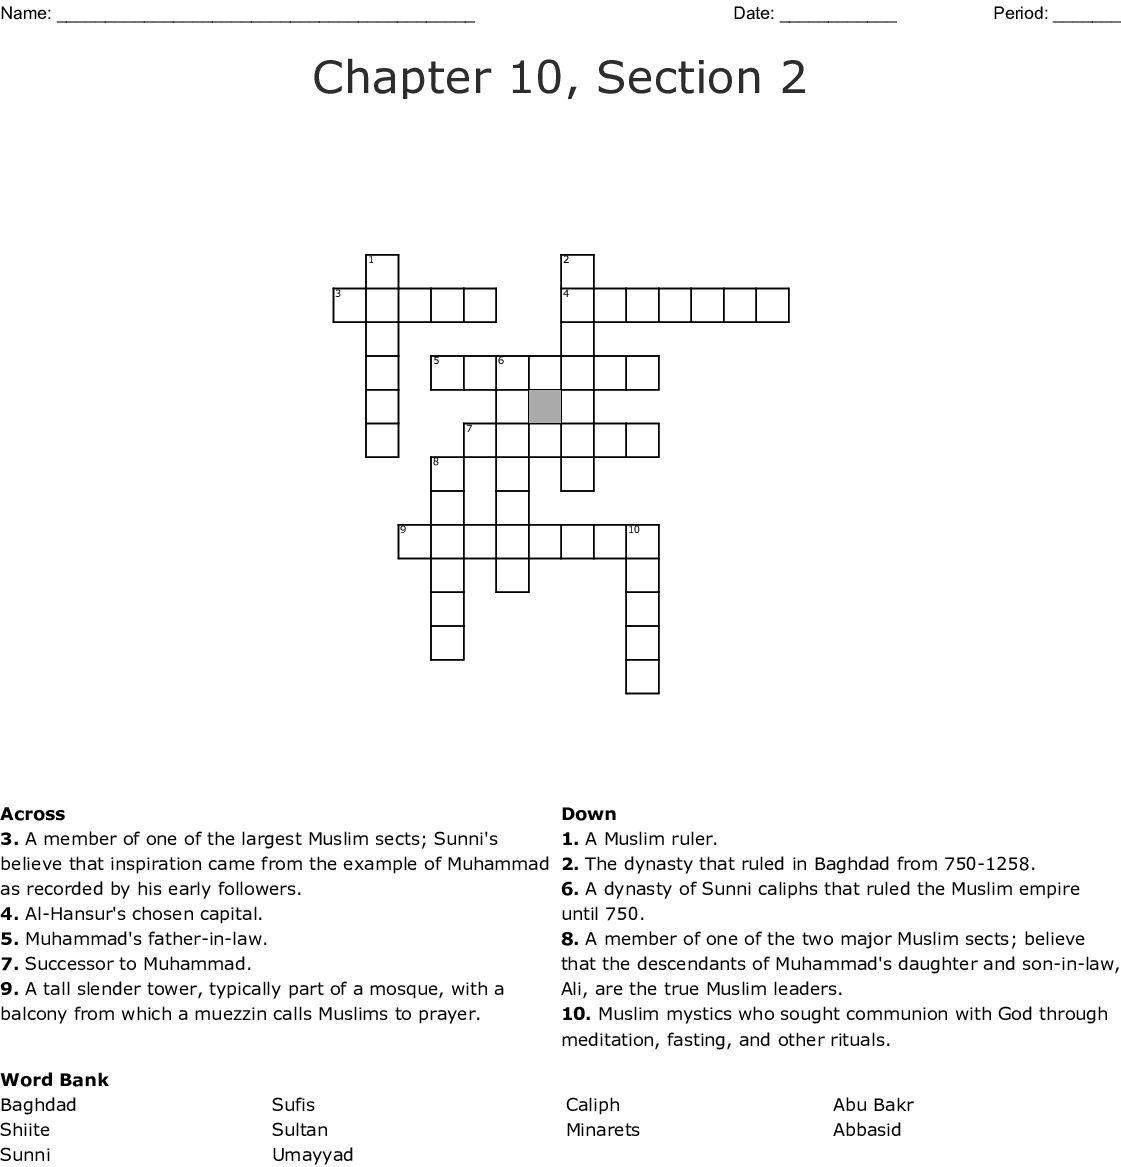 Chapter 10 Section 2 Crossword